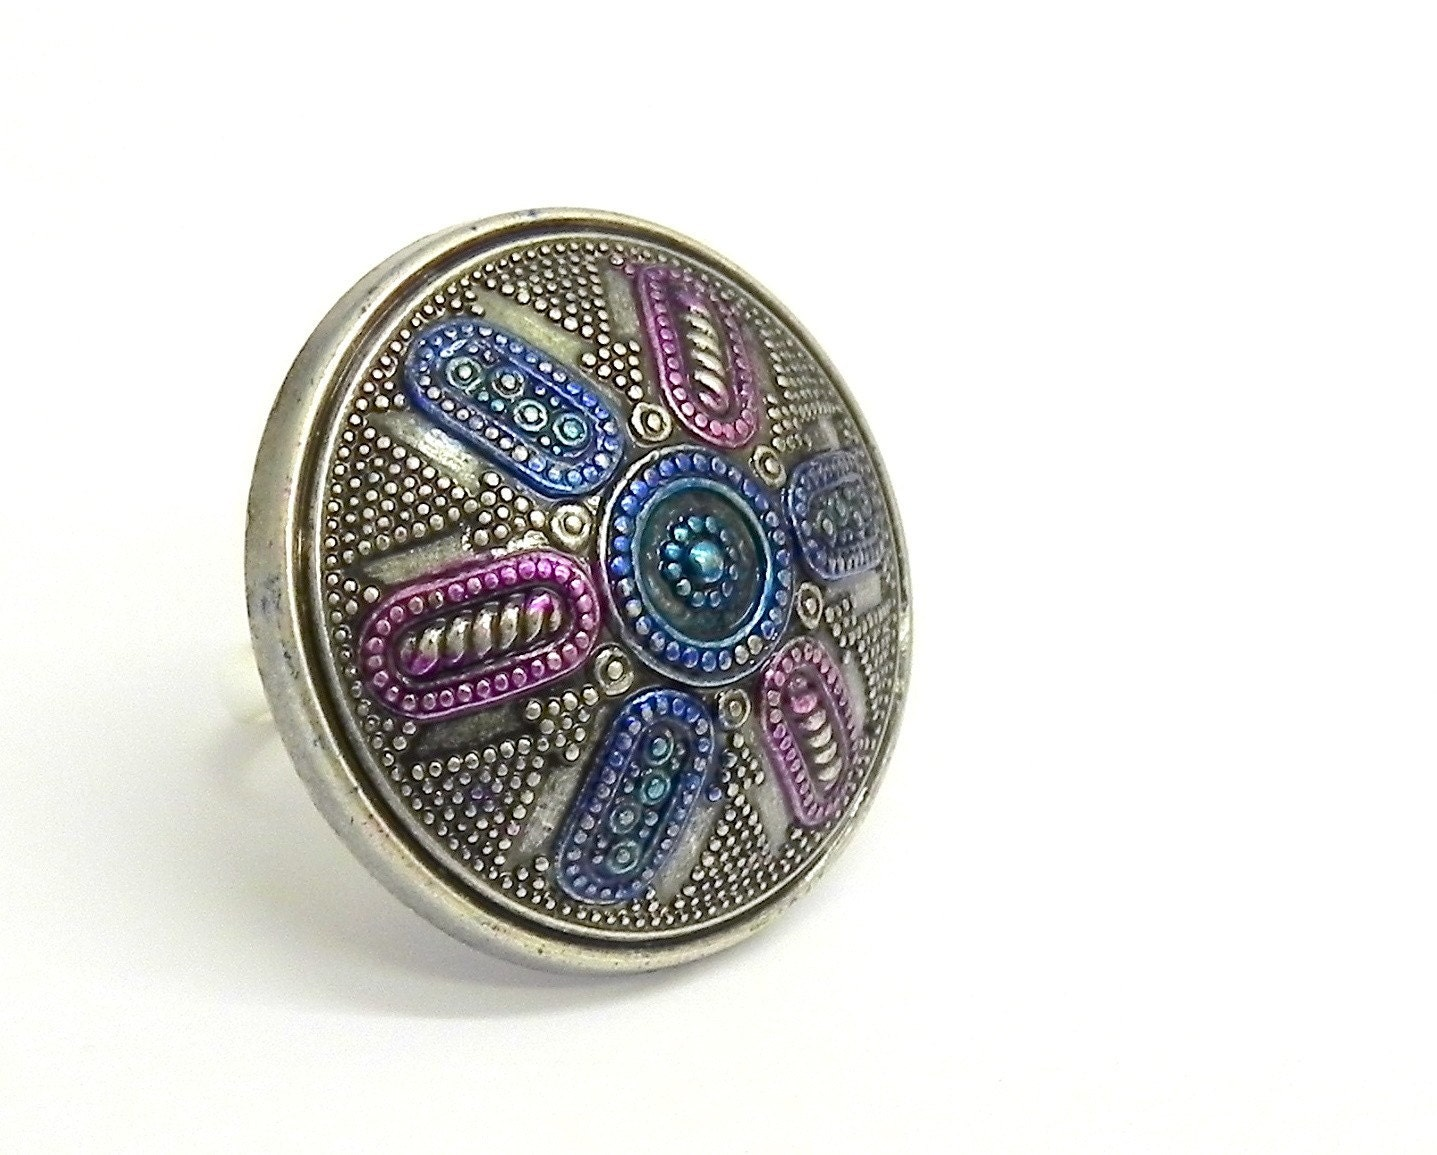 Vintage Metallic Silver, Blue and  Purple  Ring - Adjustable band